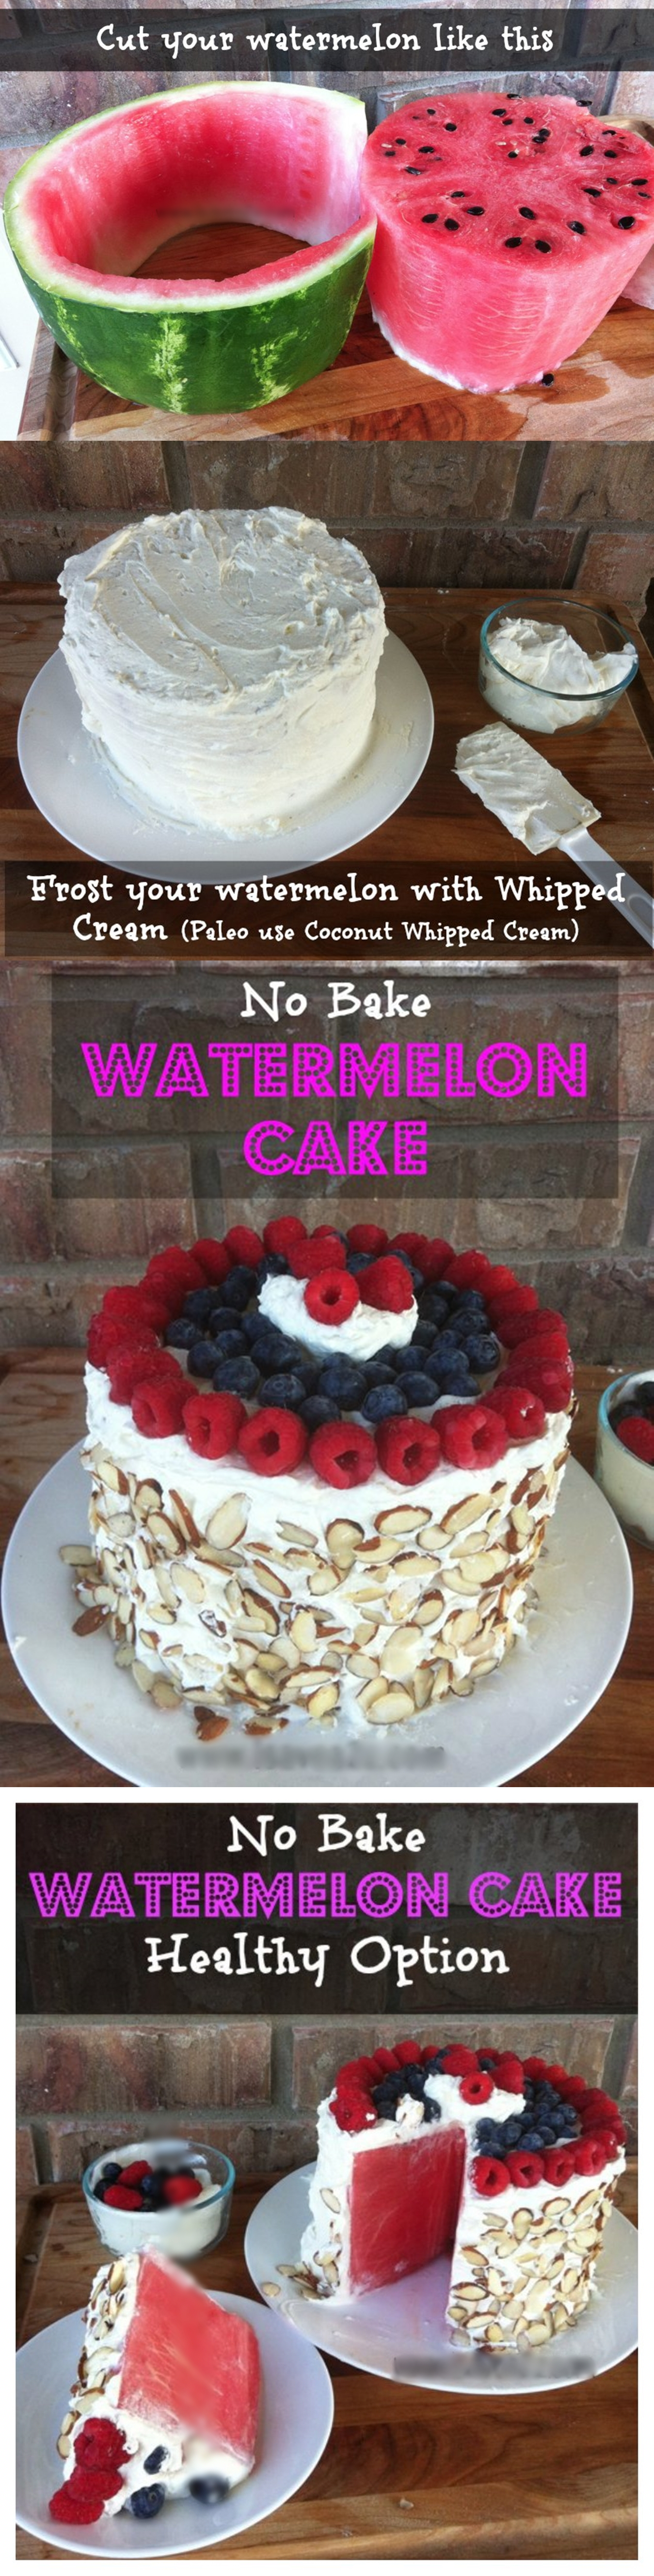 No Bake Watermelon Cake M Wonderful DIY No Bake Watermelon Cake